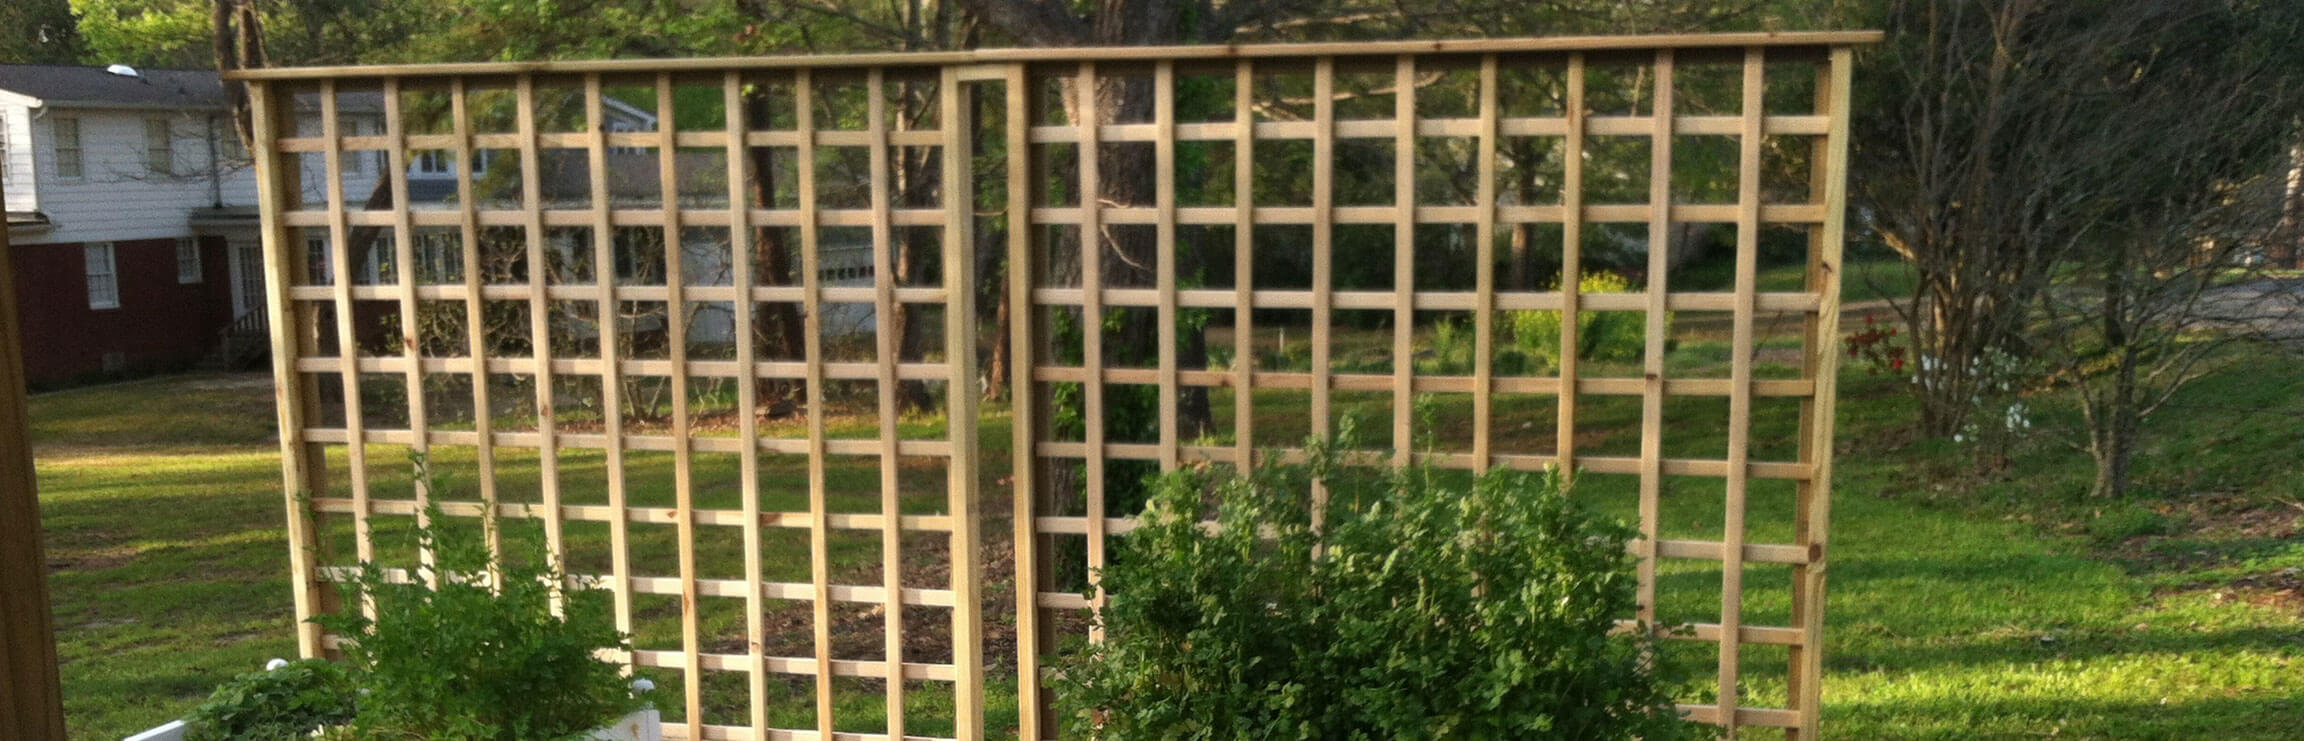 How Build 6 Foot Garden Wall